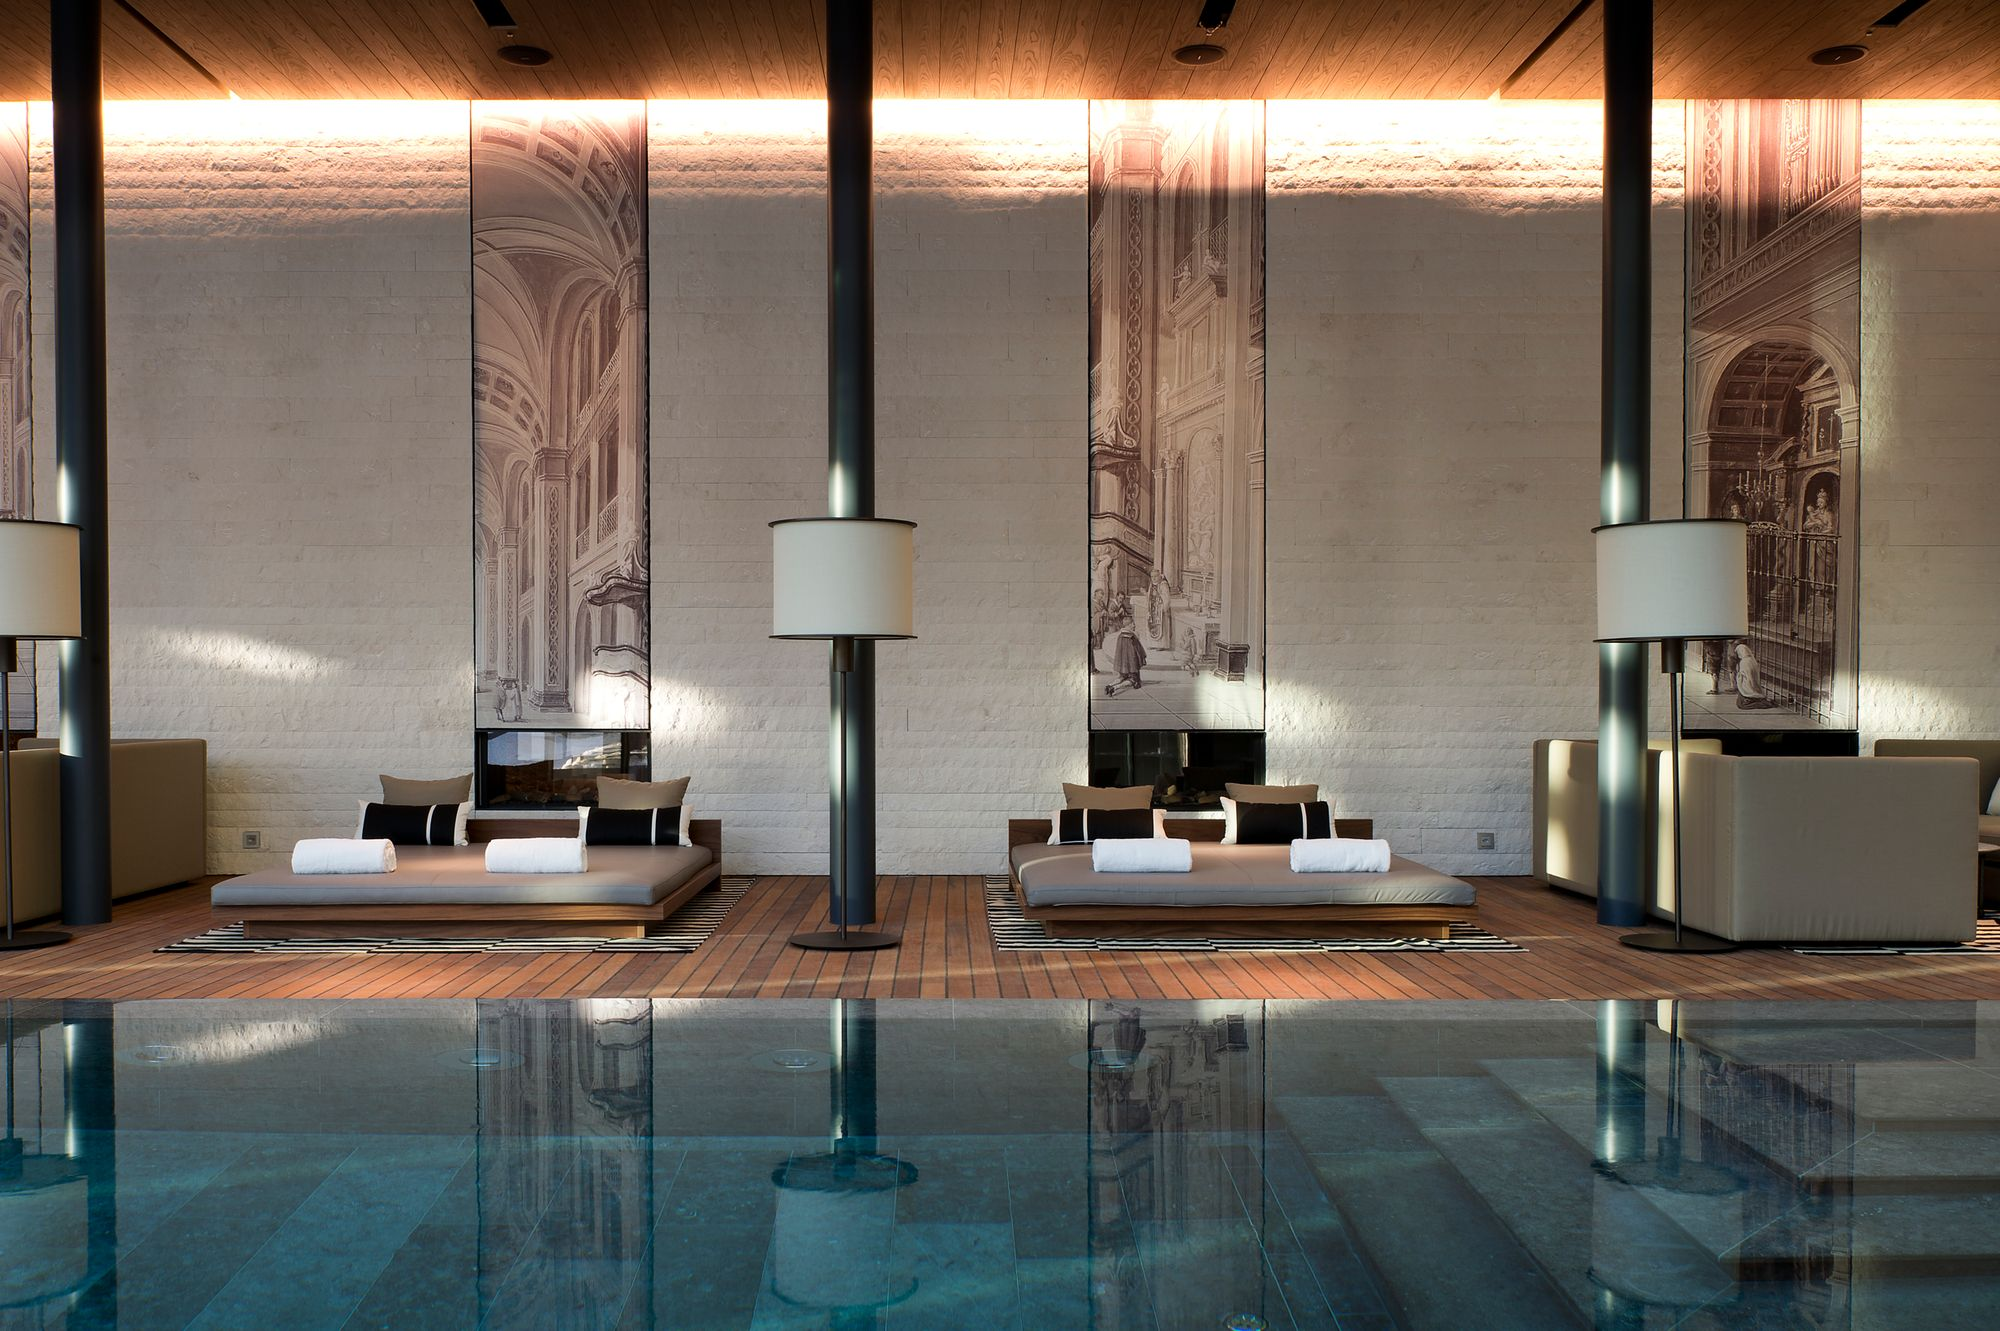 Apres-ski reaches new heights at this chic chalet